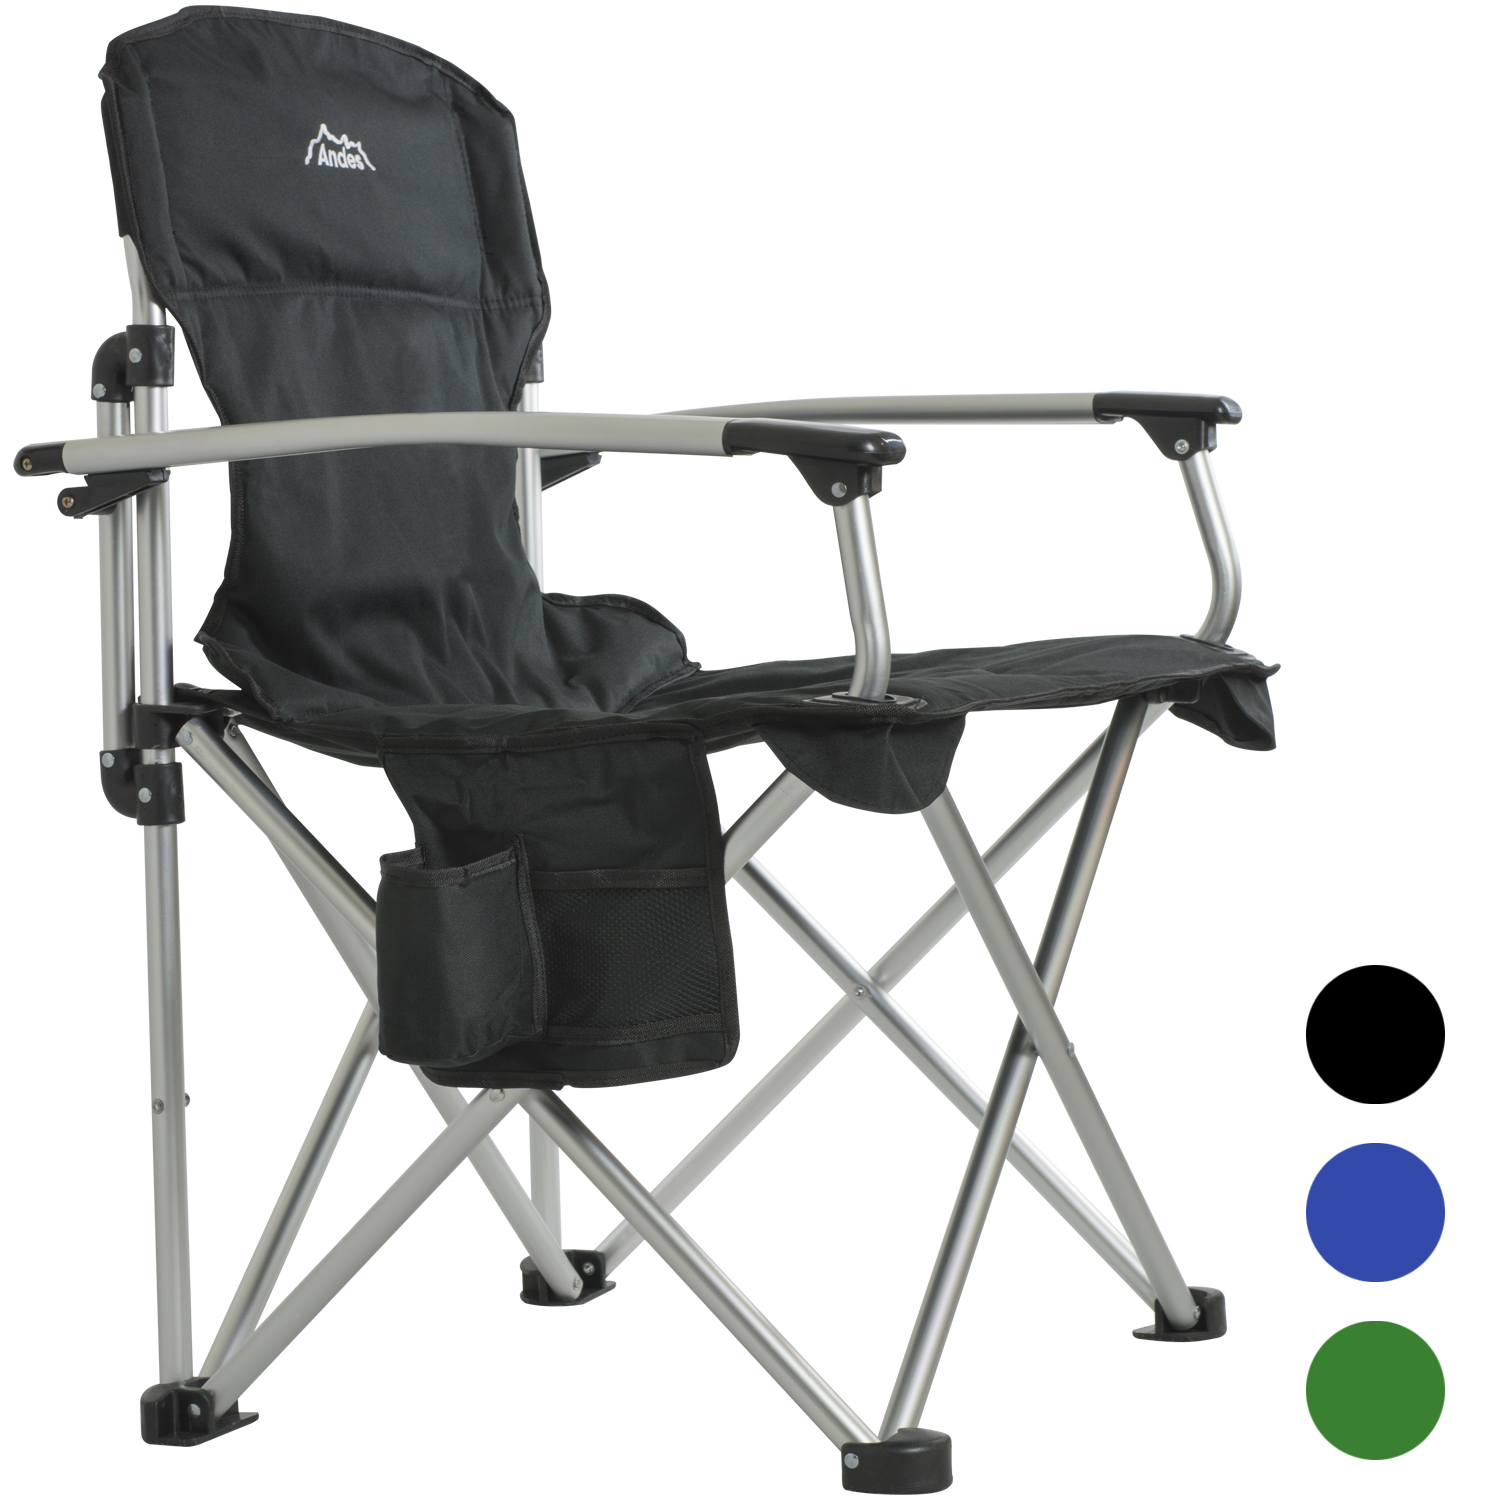 Camping Directors Chair Andes Camping Directors Chair Andes Outdoor Value